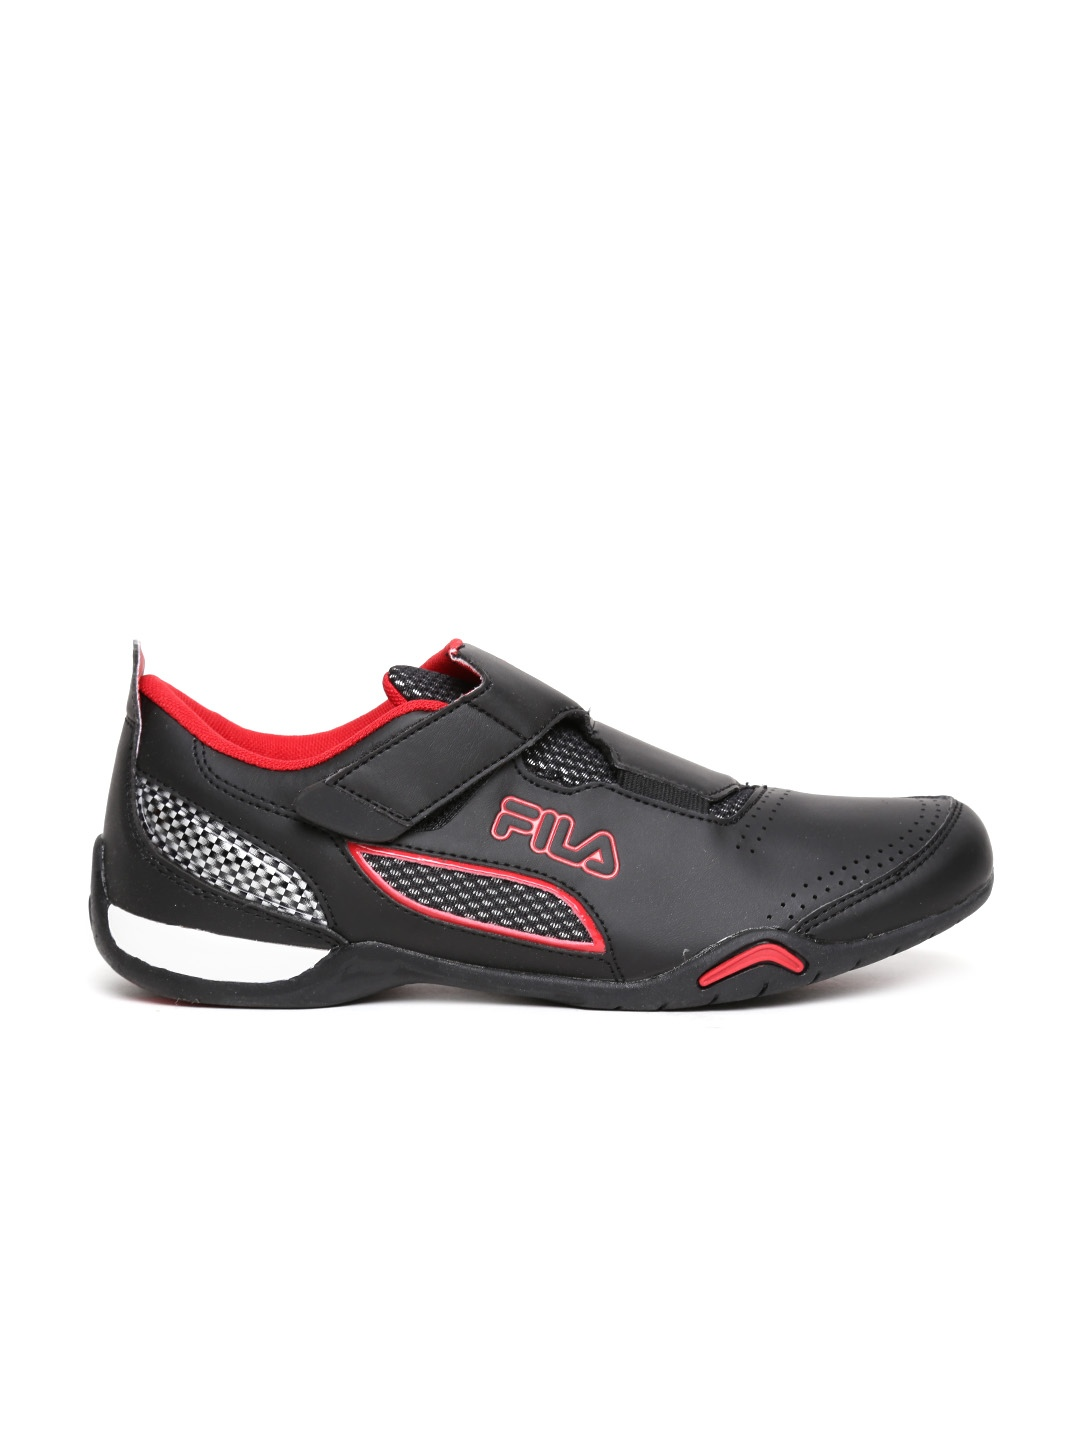 Fila shoes online shopping philippines